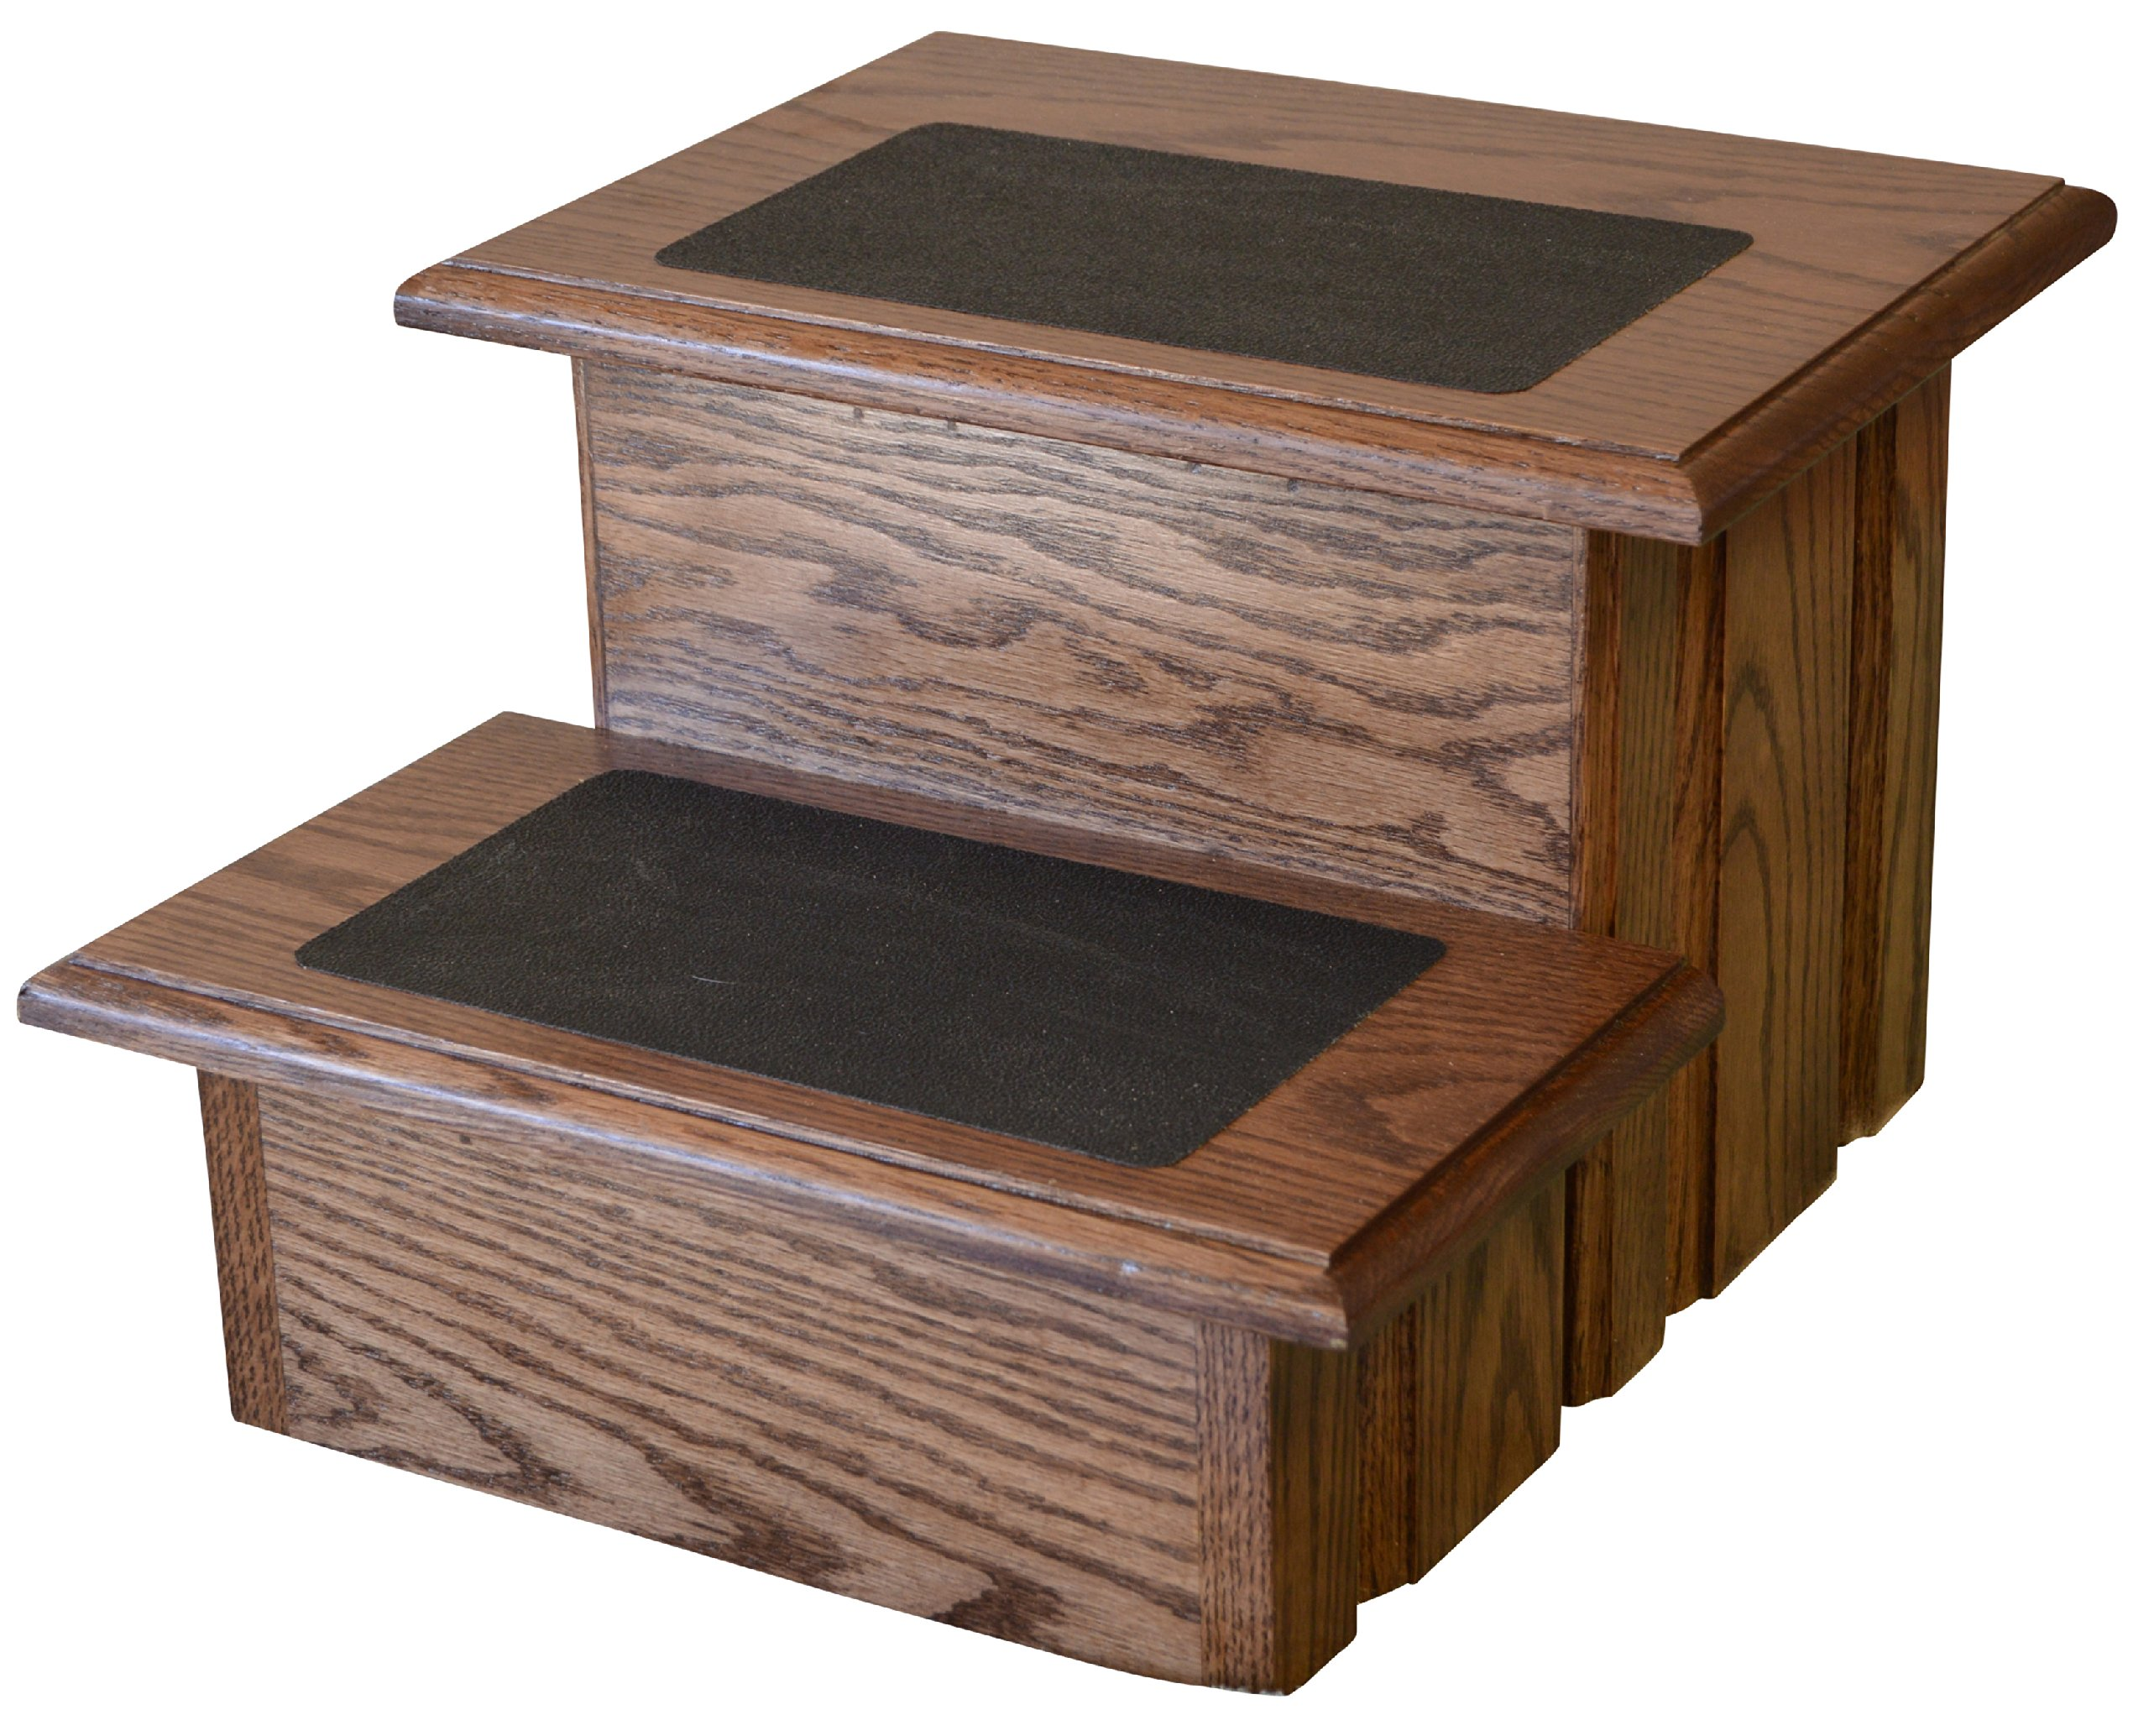 Deep Walnut Finished Solid Oak Step Stool With Non Slip Pad on a  Solid Tread 11 ½'' Tall